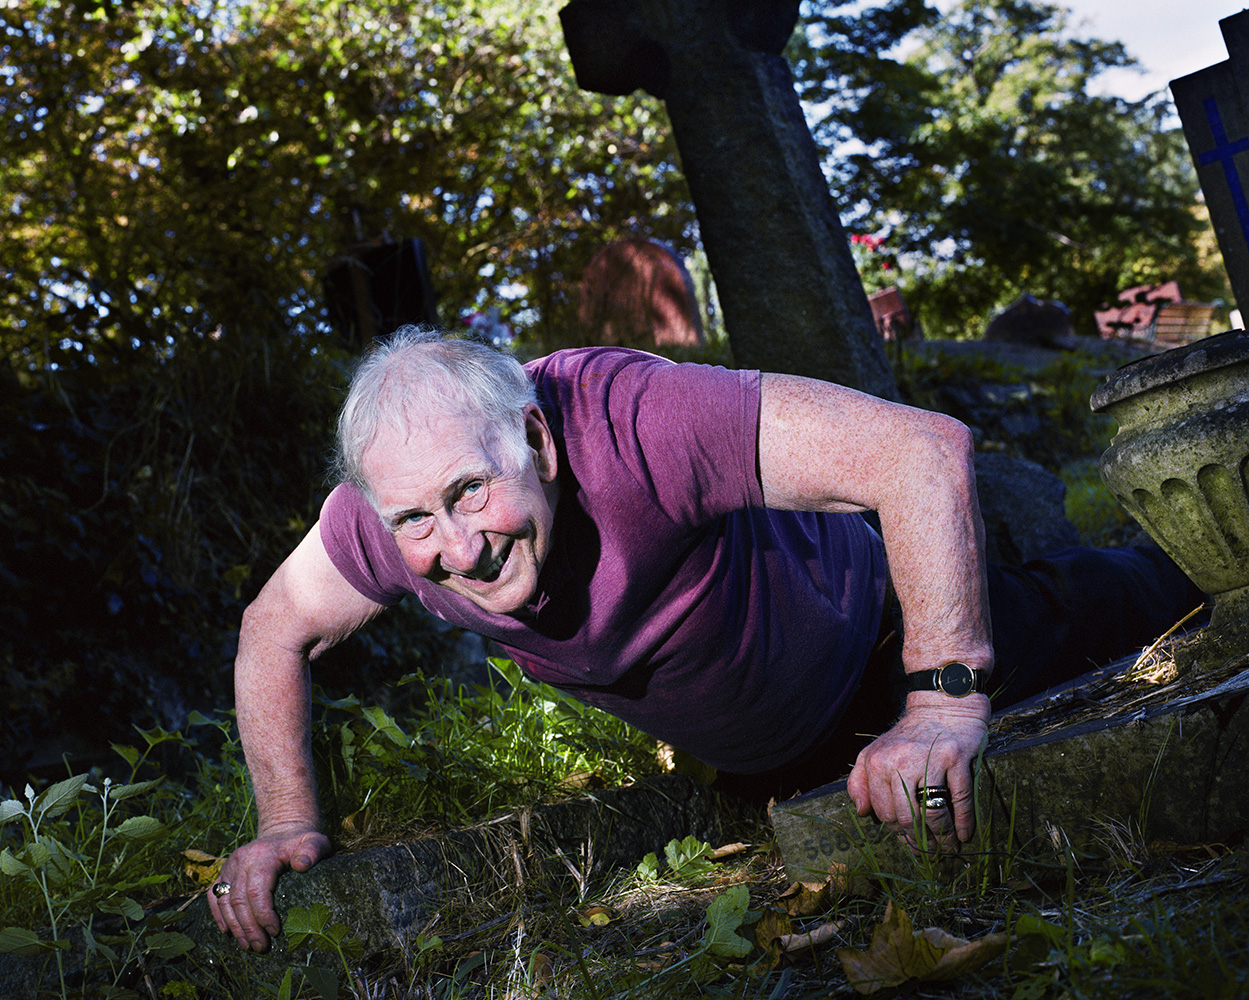 Man-Exercising-Between-Graves_piotrKarpi